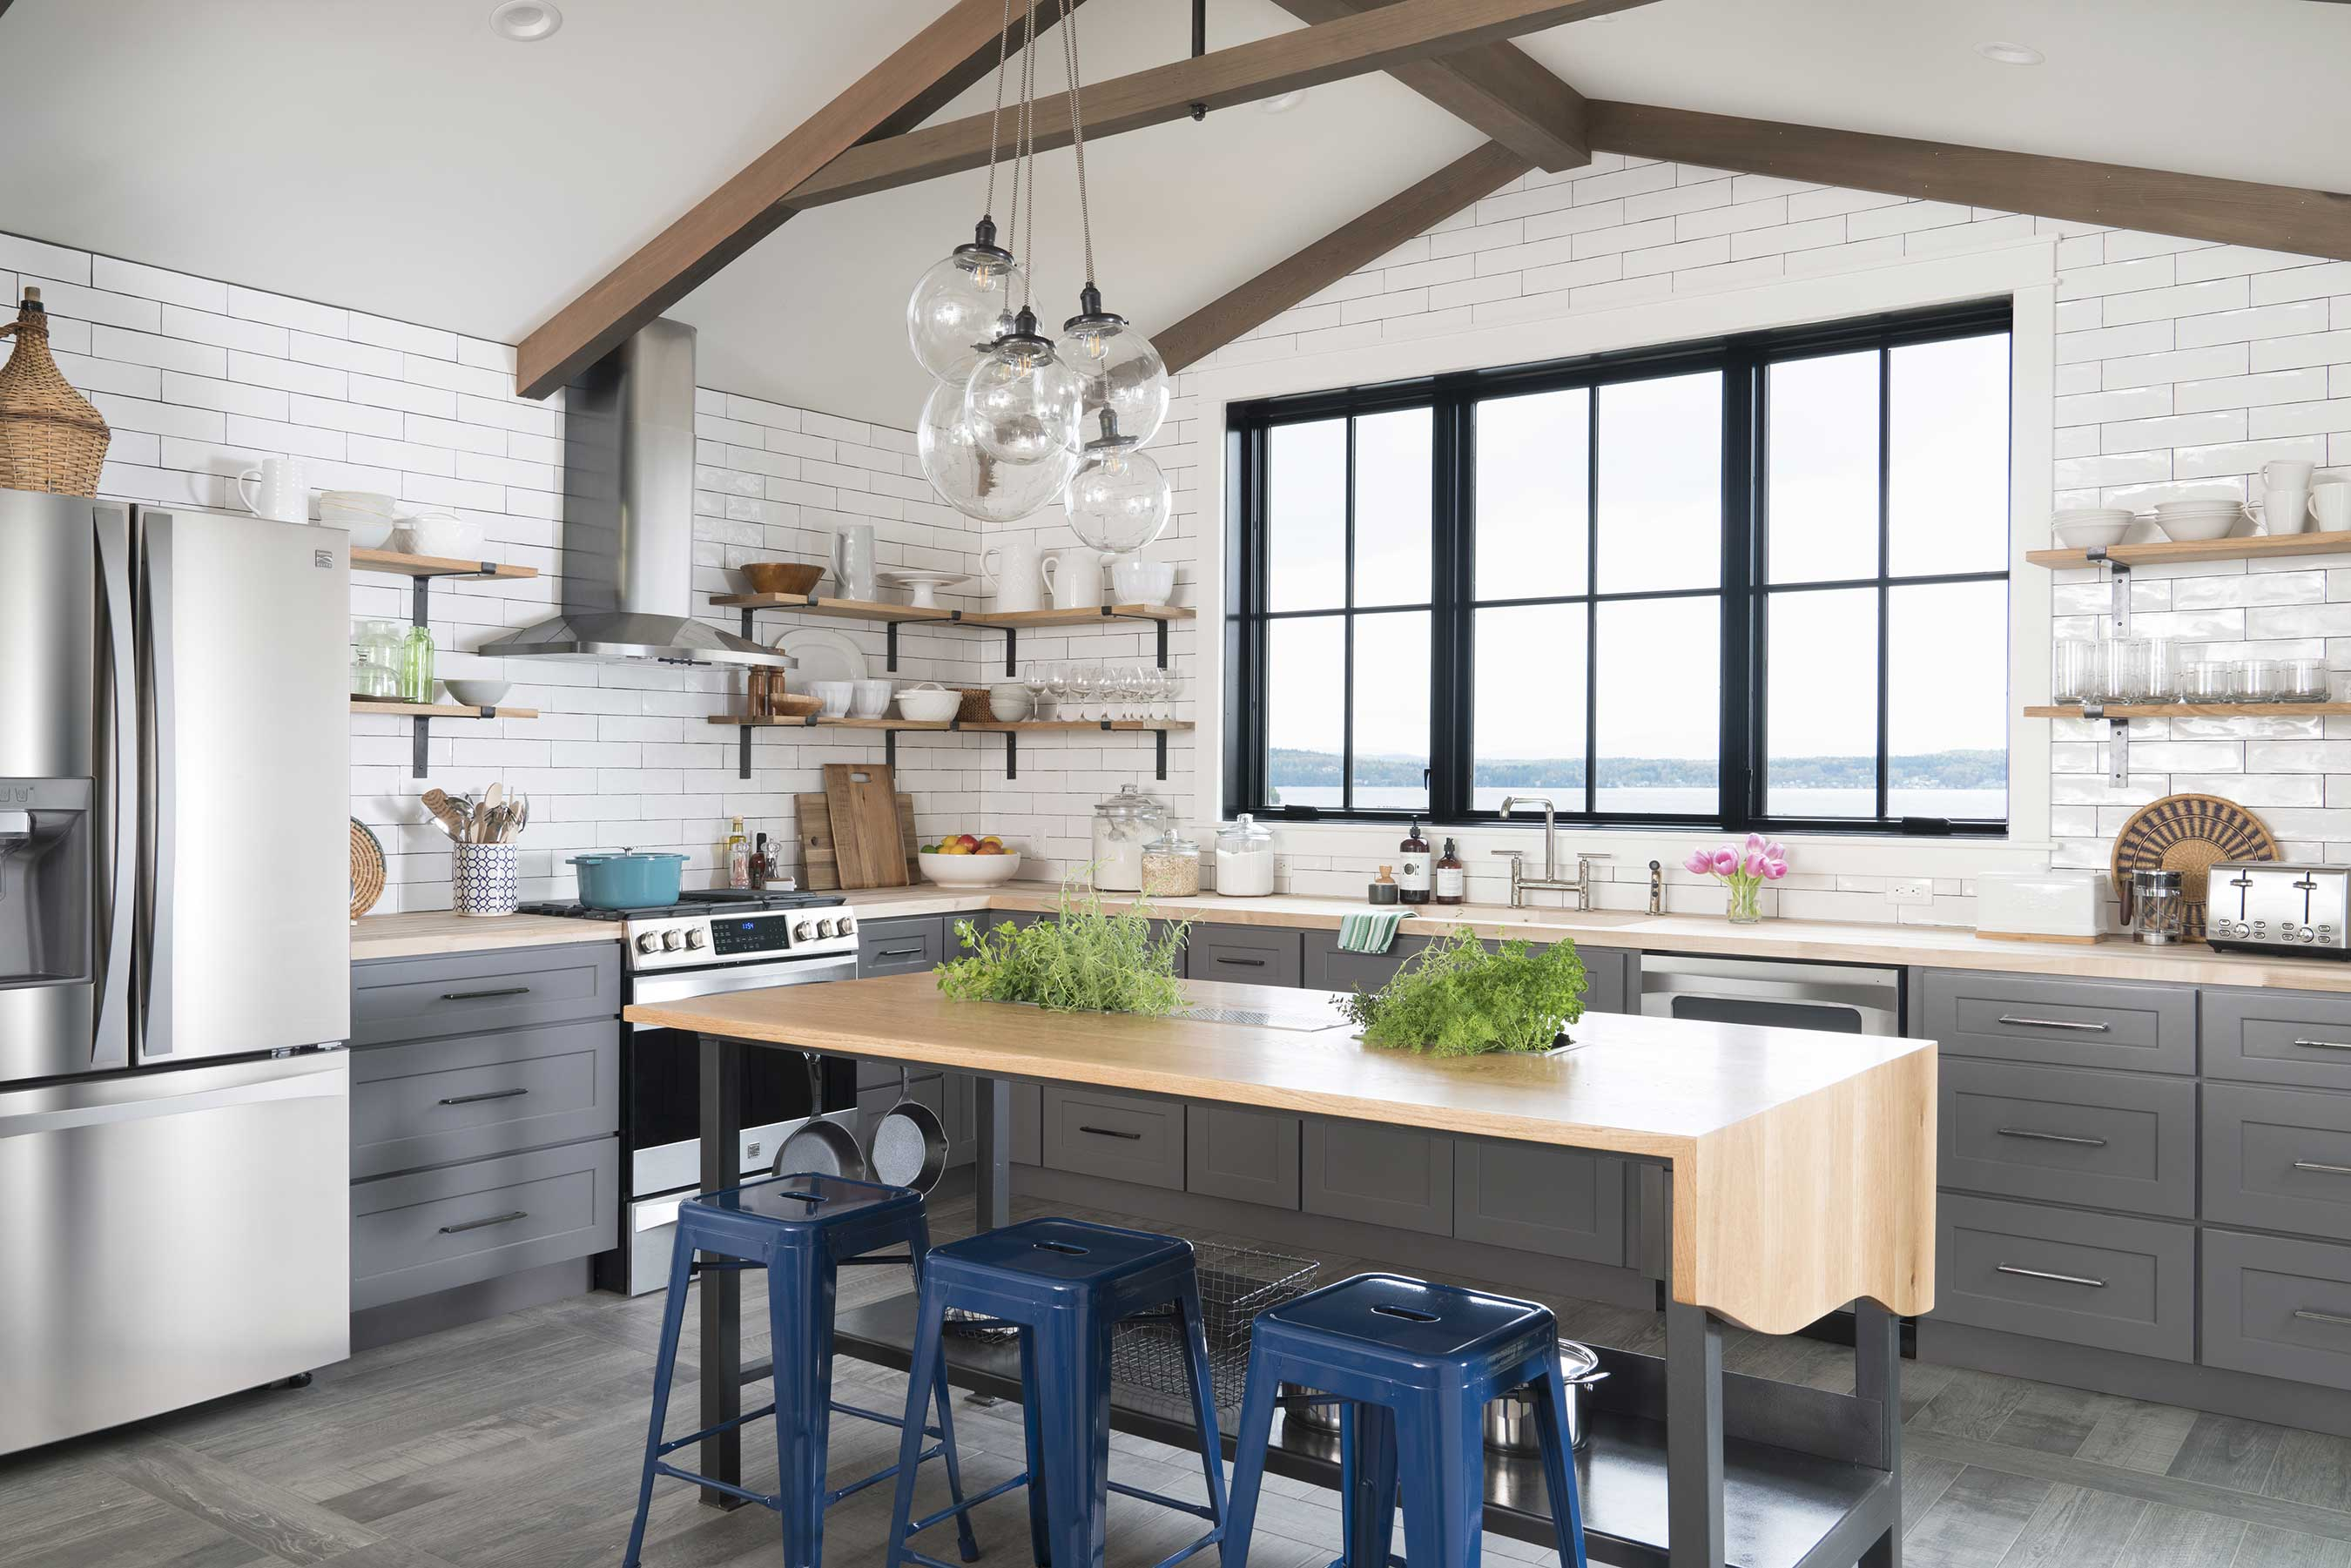 In the fresh farmhouse kitchen of the DIY Network Ultimate Retreat 2017, rustic details are expertly combined with modern conveniences. A custom-built island with a waterfall countertop is surrounded by open shelving, butcher block counters and an oversized subway tile backsplash. The vaulted ceiling features dark stained beams and frames an incredible lake view through a large window.